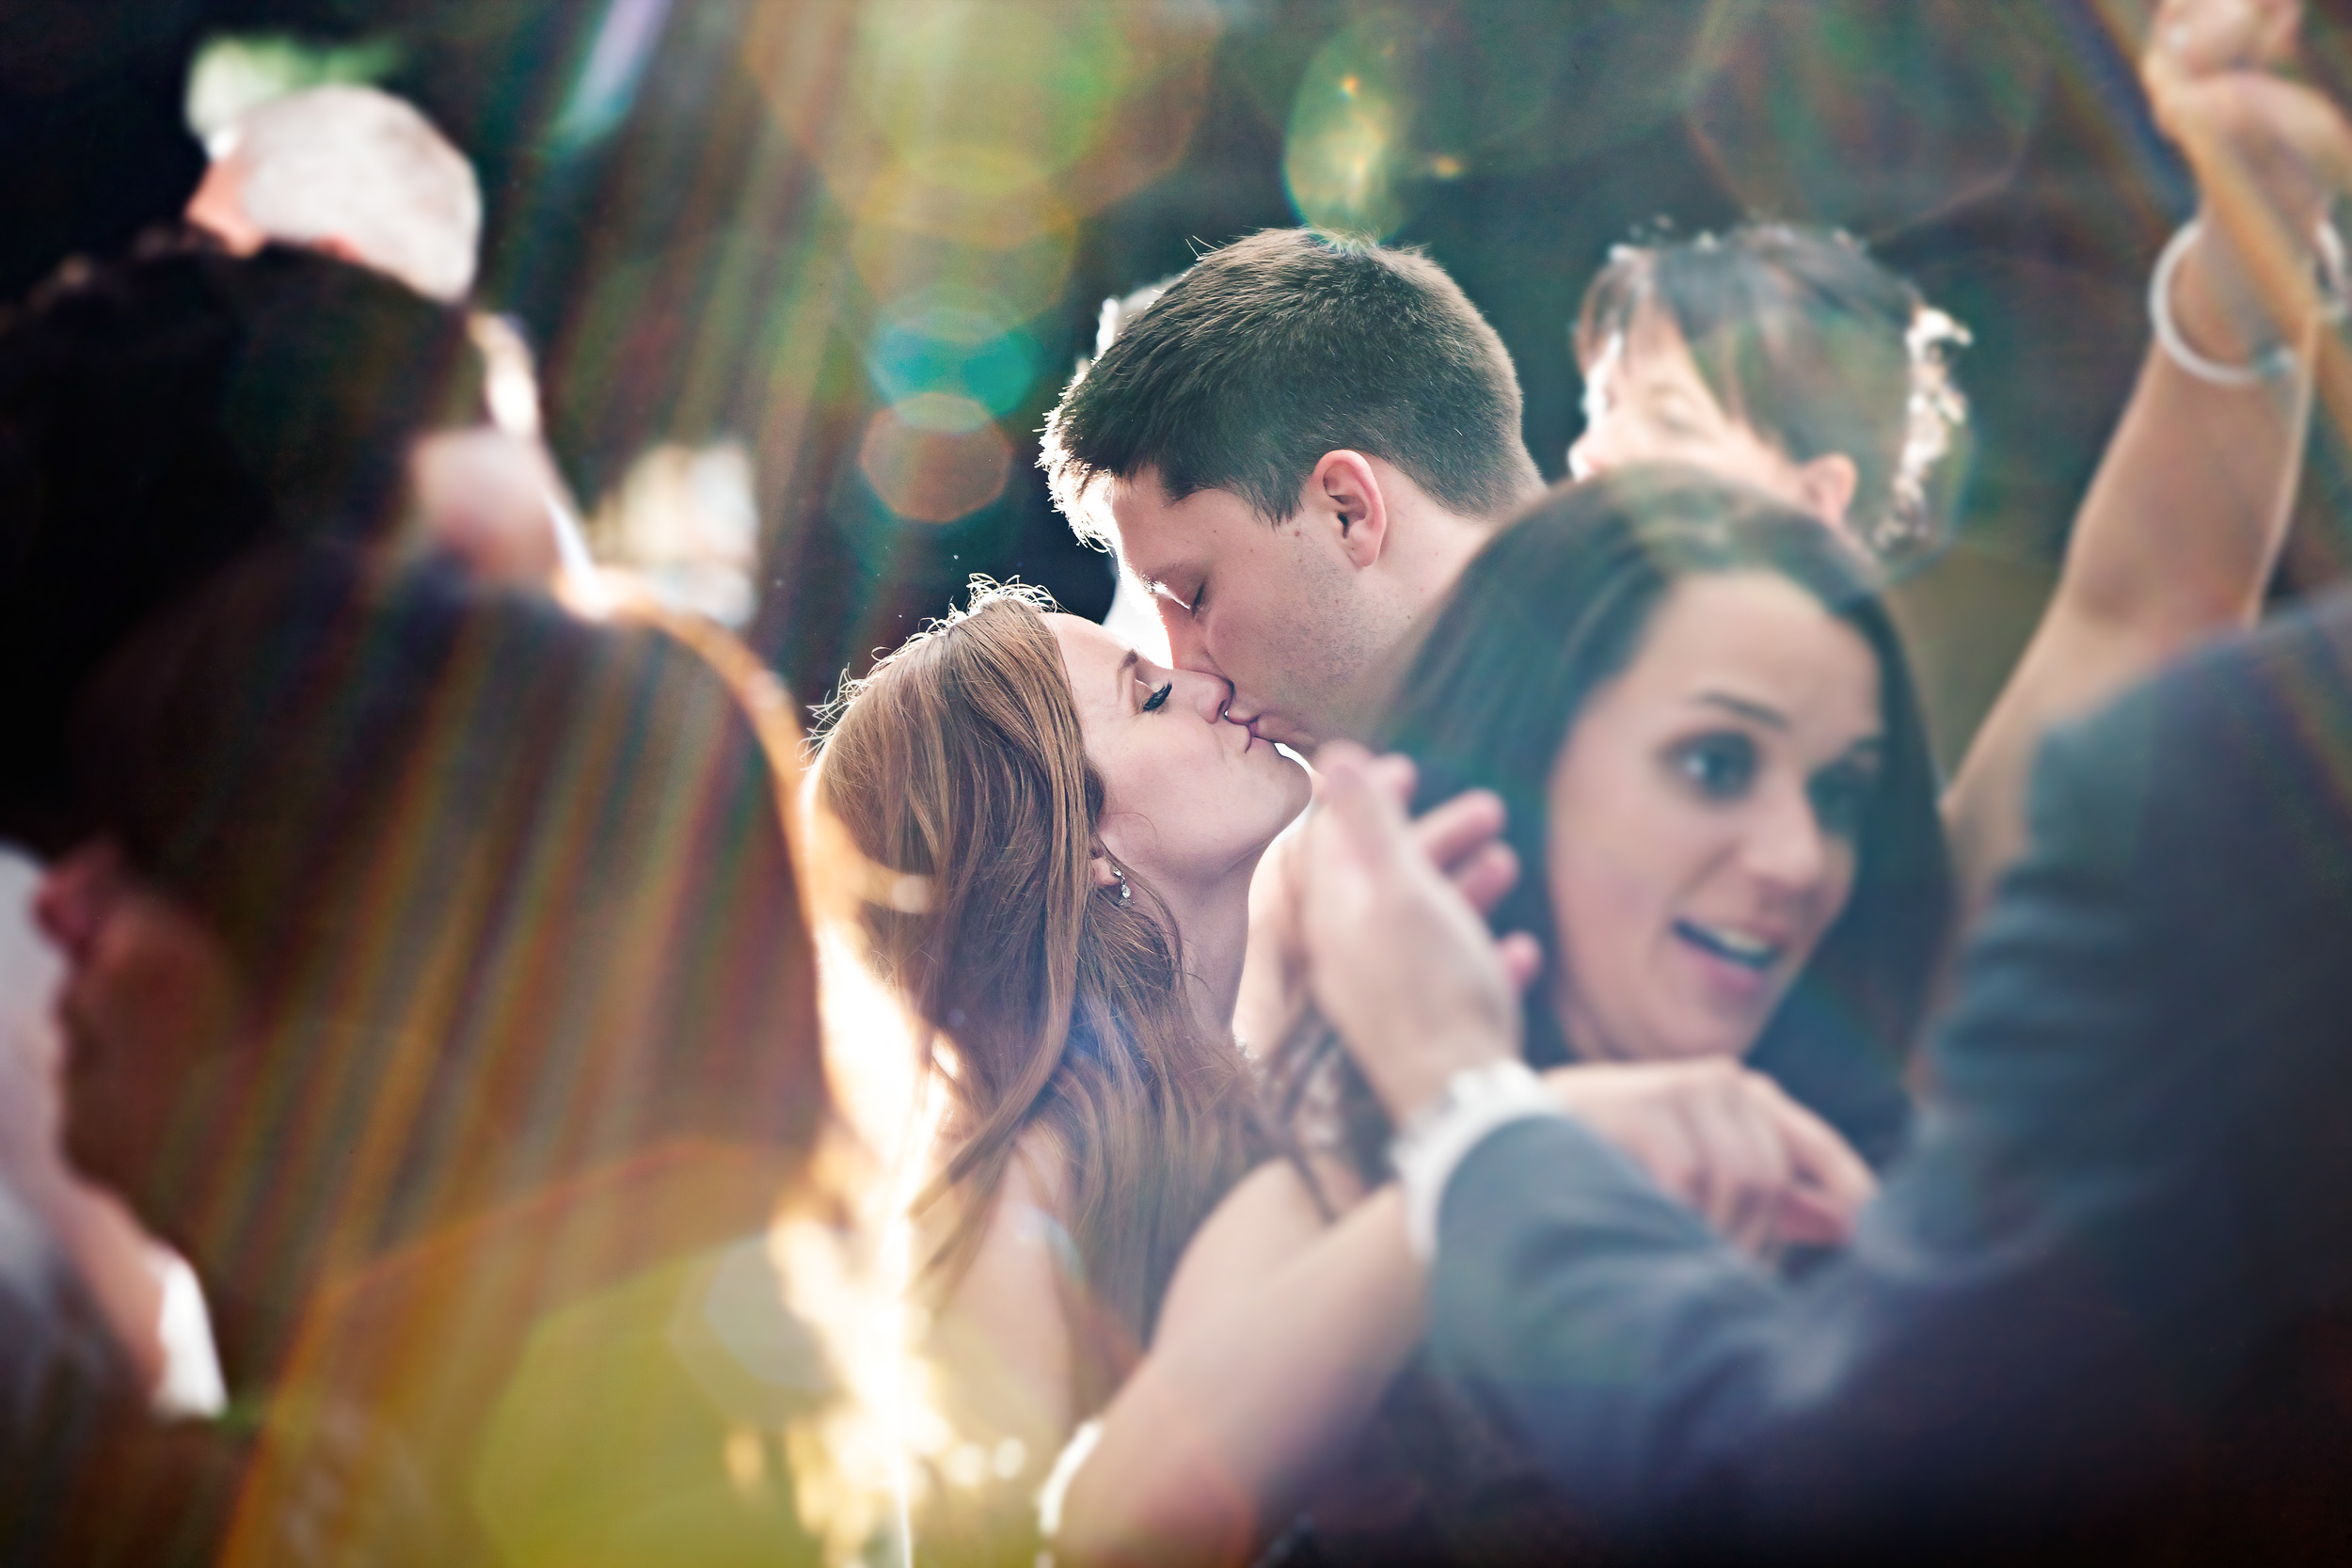 Ohhhh those sneaky little kisses on the dance floor, on your wedding day! One of our favourite moments of the day! xo